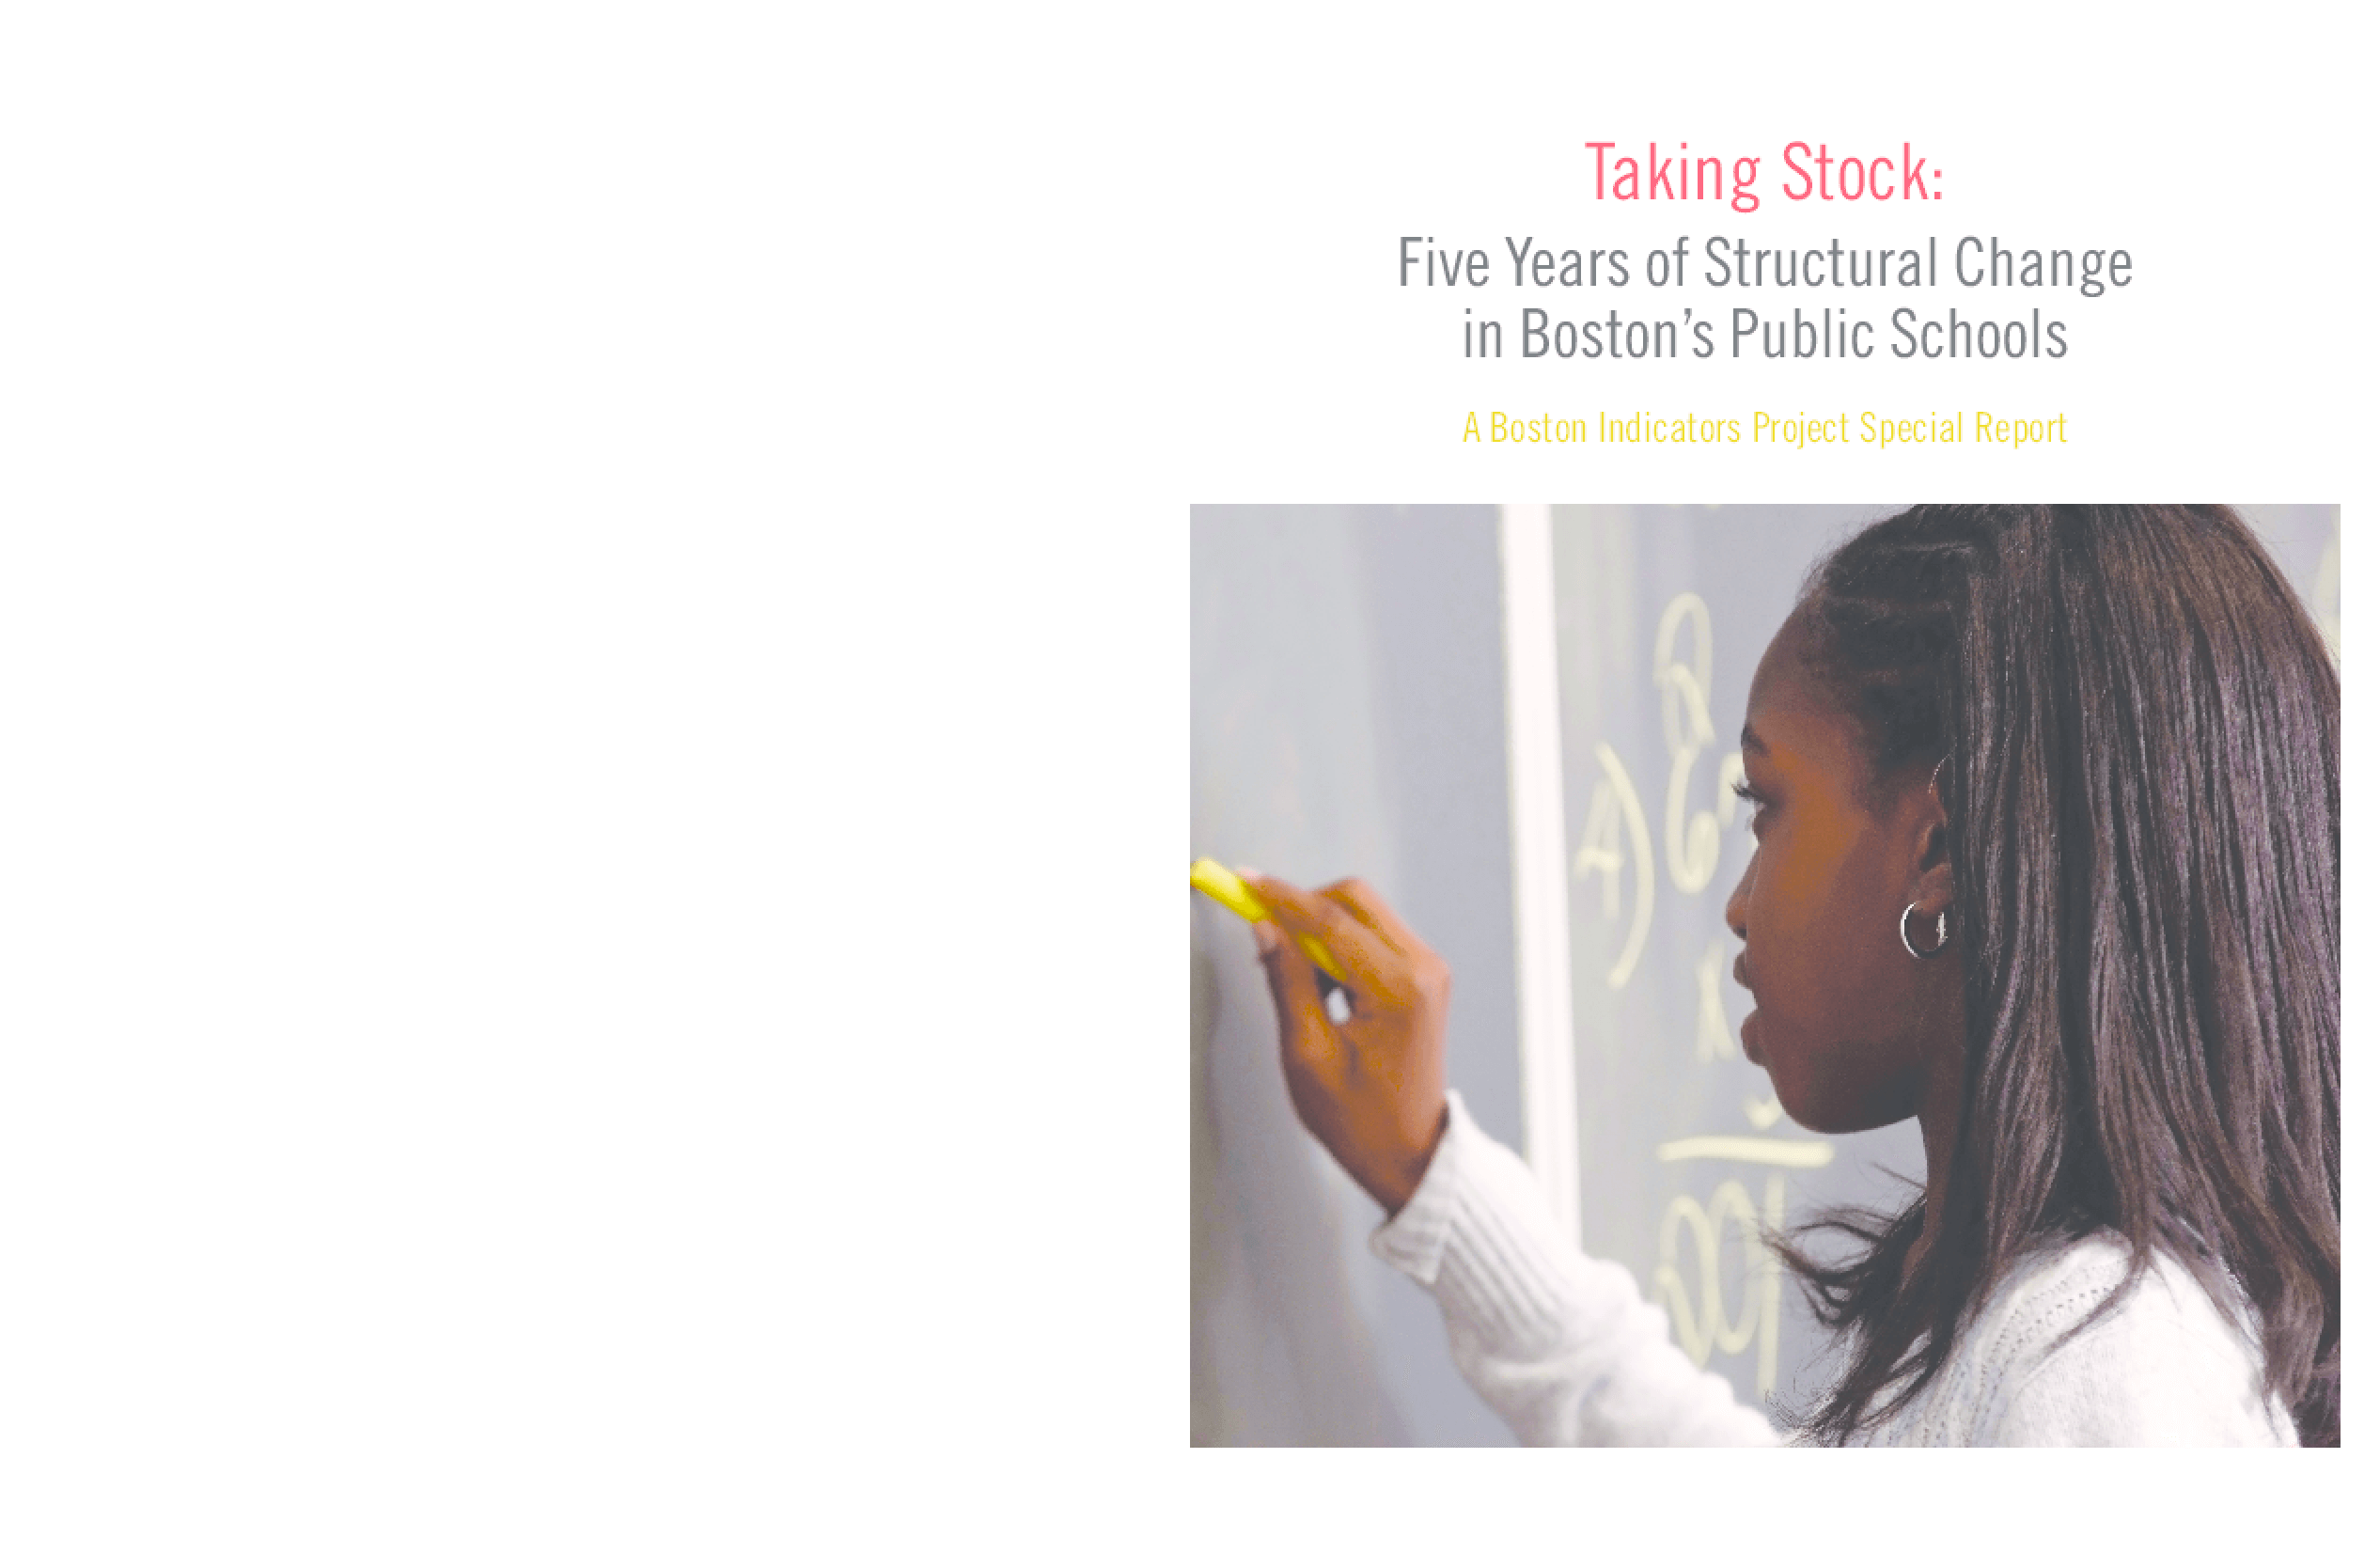 Taking Stock: Five Years of Structural Change in Boston's Public Schools, A Boston Indicators Project Special Report